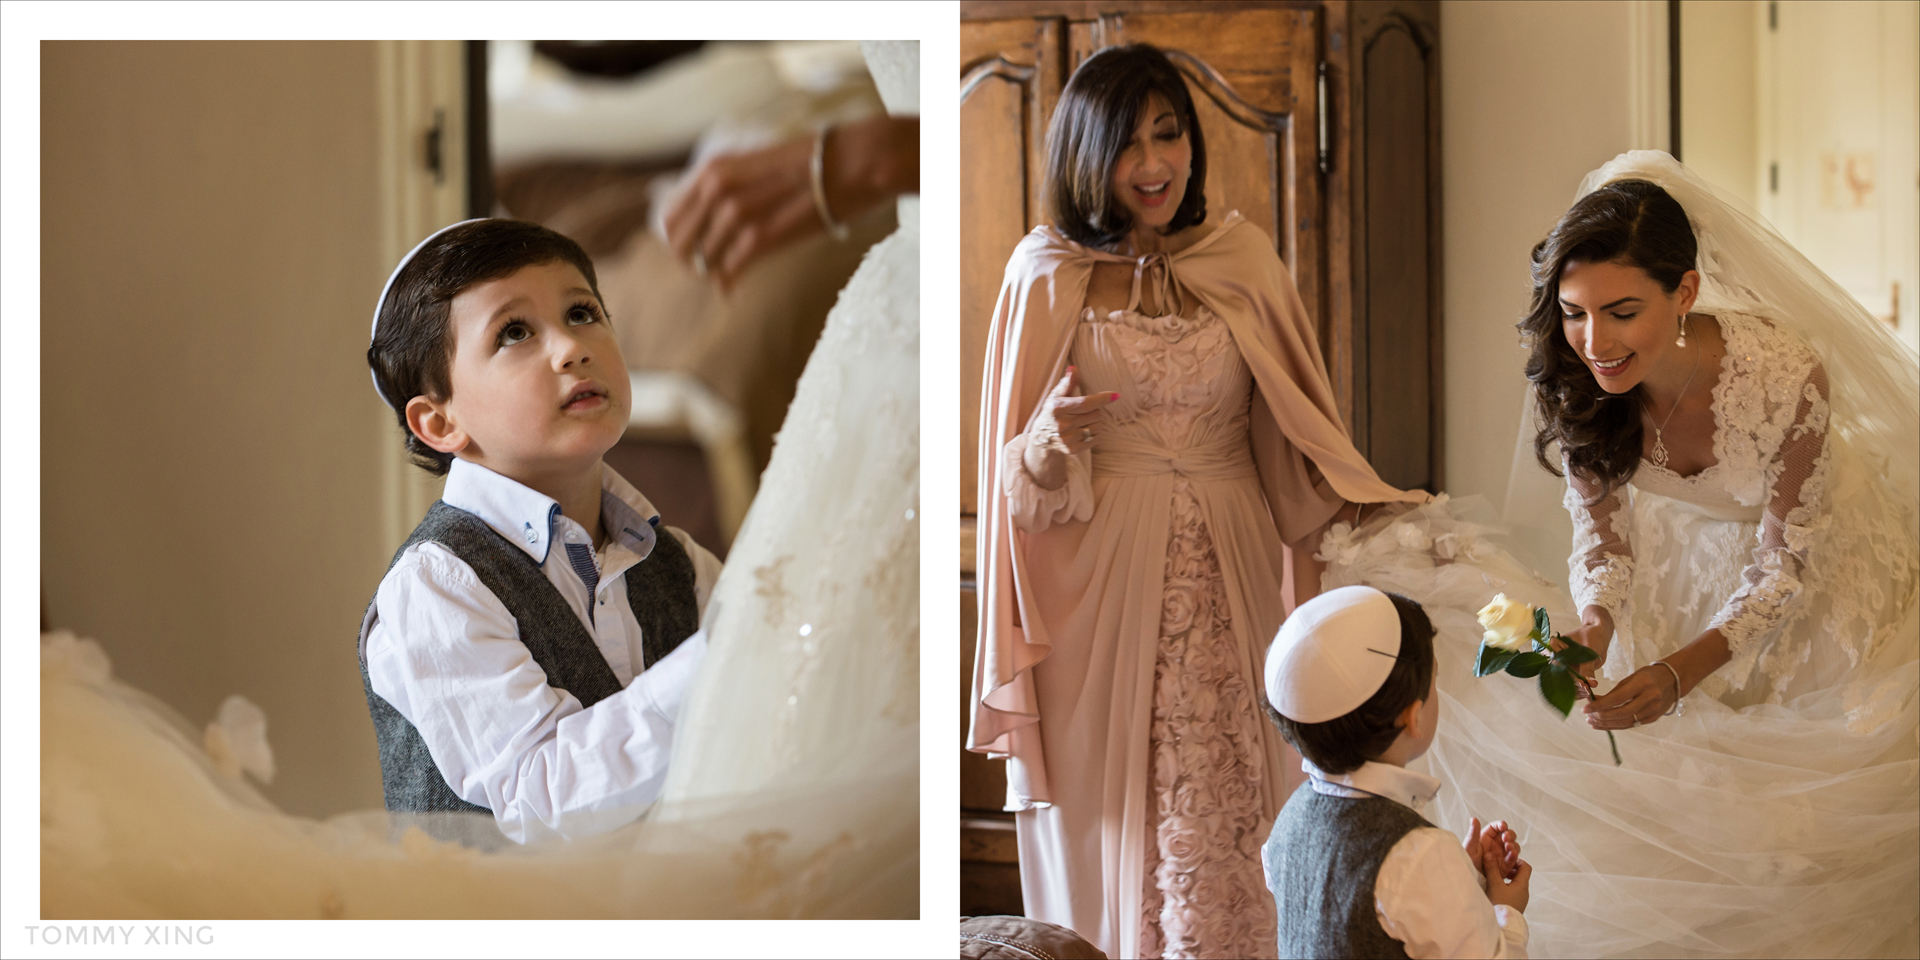 Los Angeles Jewishg Wedding at Riviera Country Club in Pacific Palisades 洛杉矶婚礼婚纱摄影师  Tommy Xing Photography 05.jpg